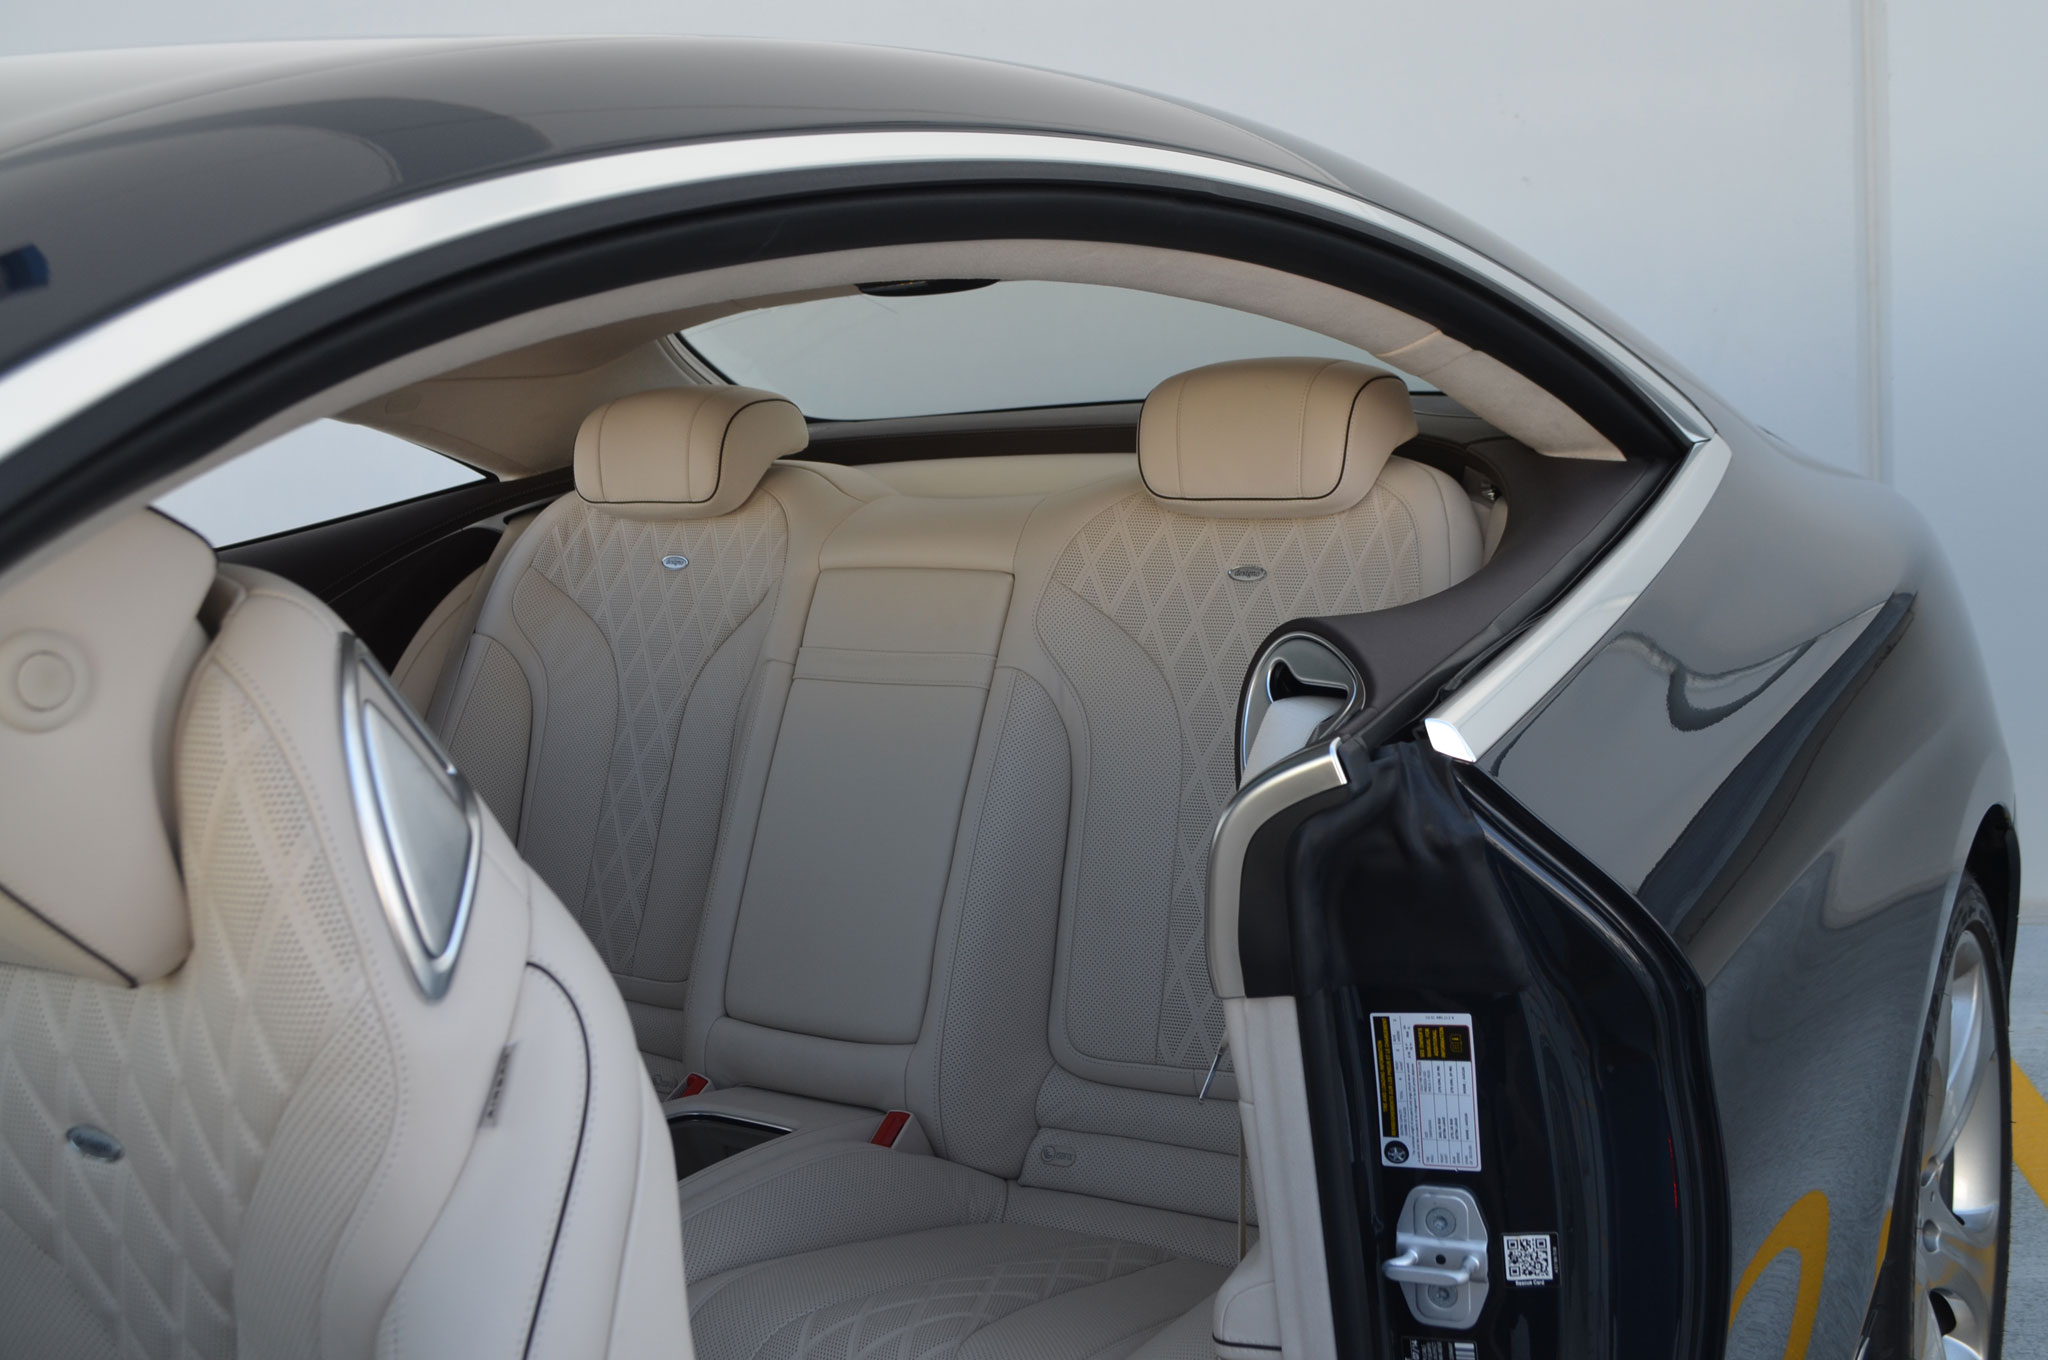 http://st.automobilemag.com/uploads/sites/11/2015/07/2015-Mercedes-Benz-S550-Coupe-rear-seat.jpg